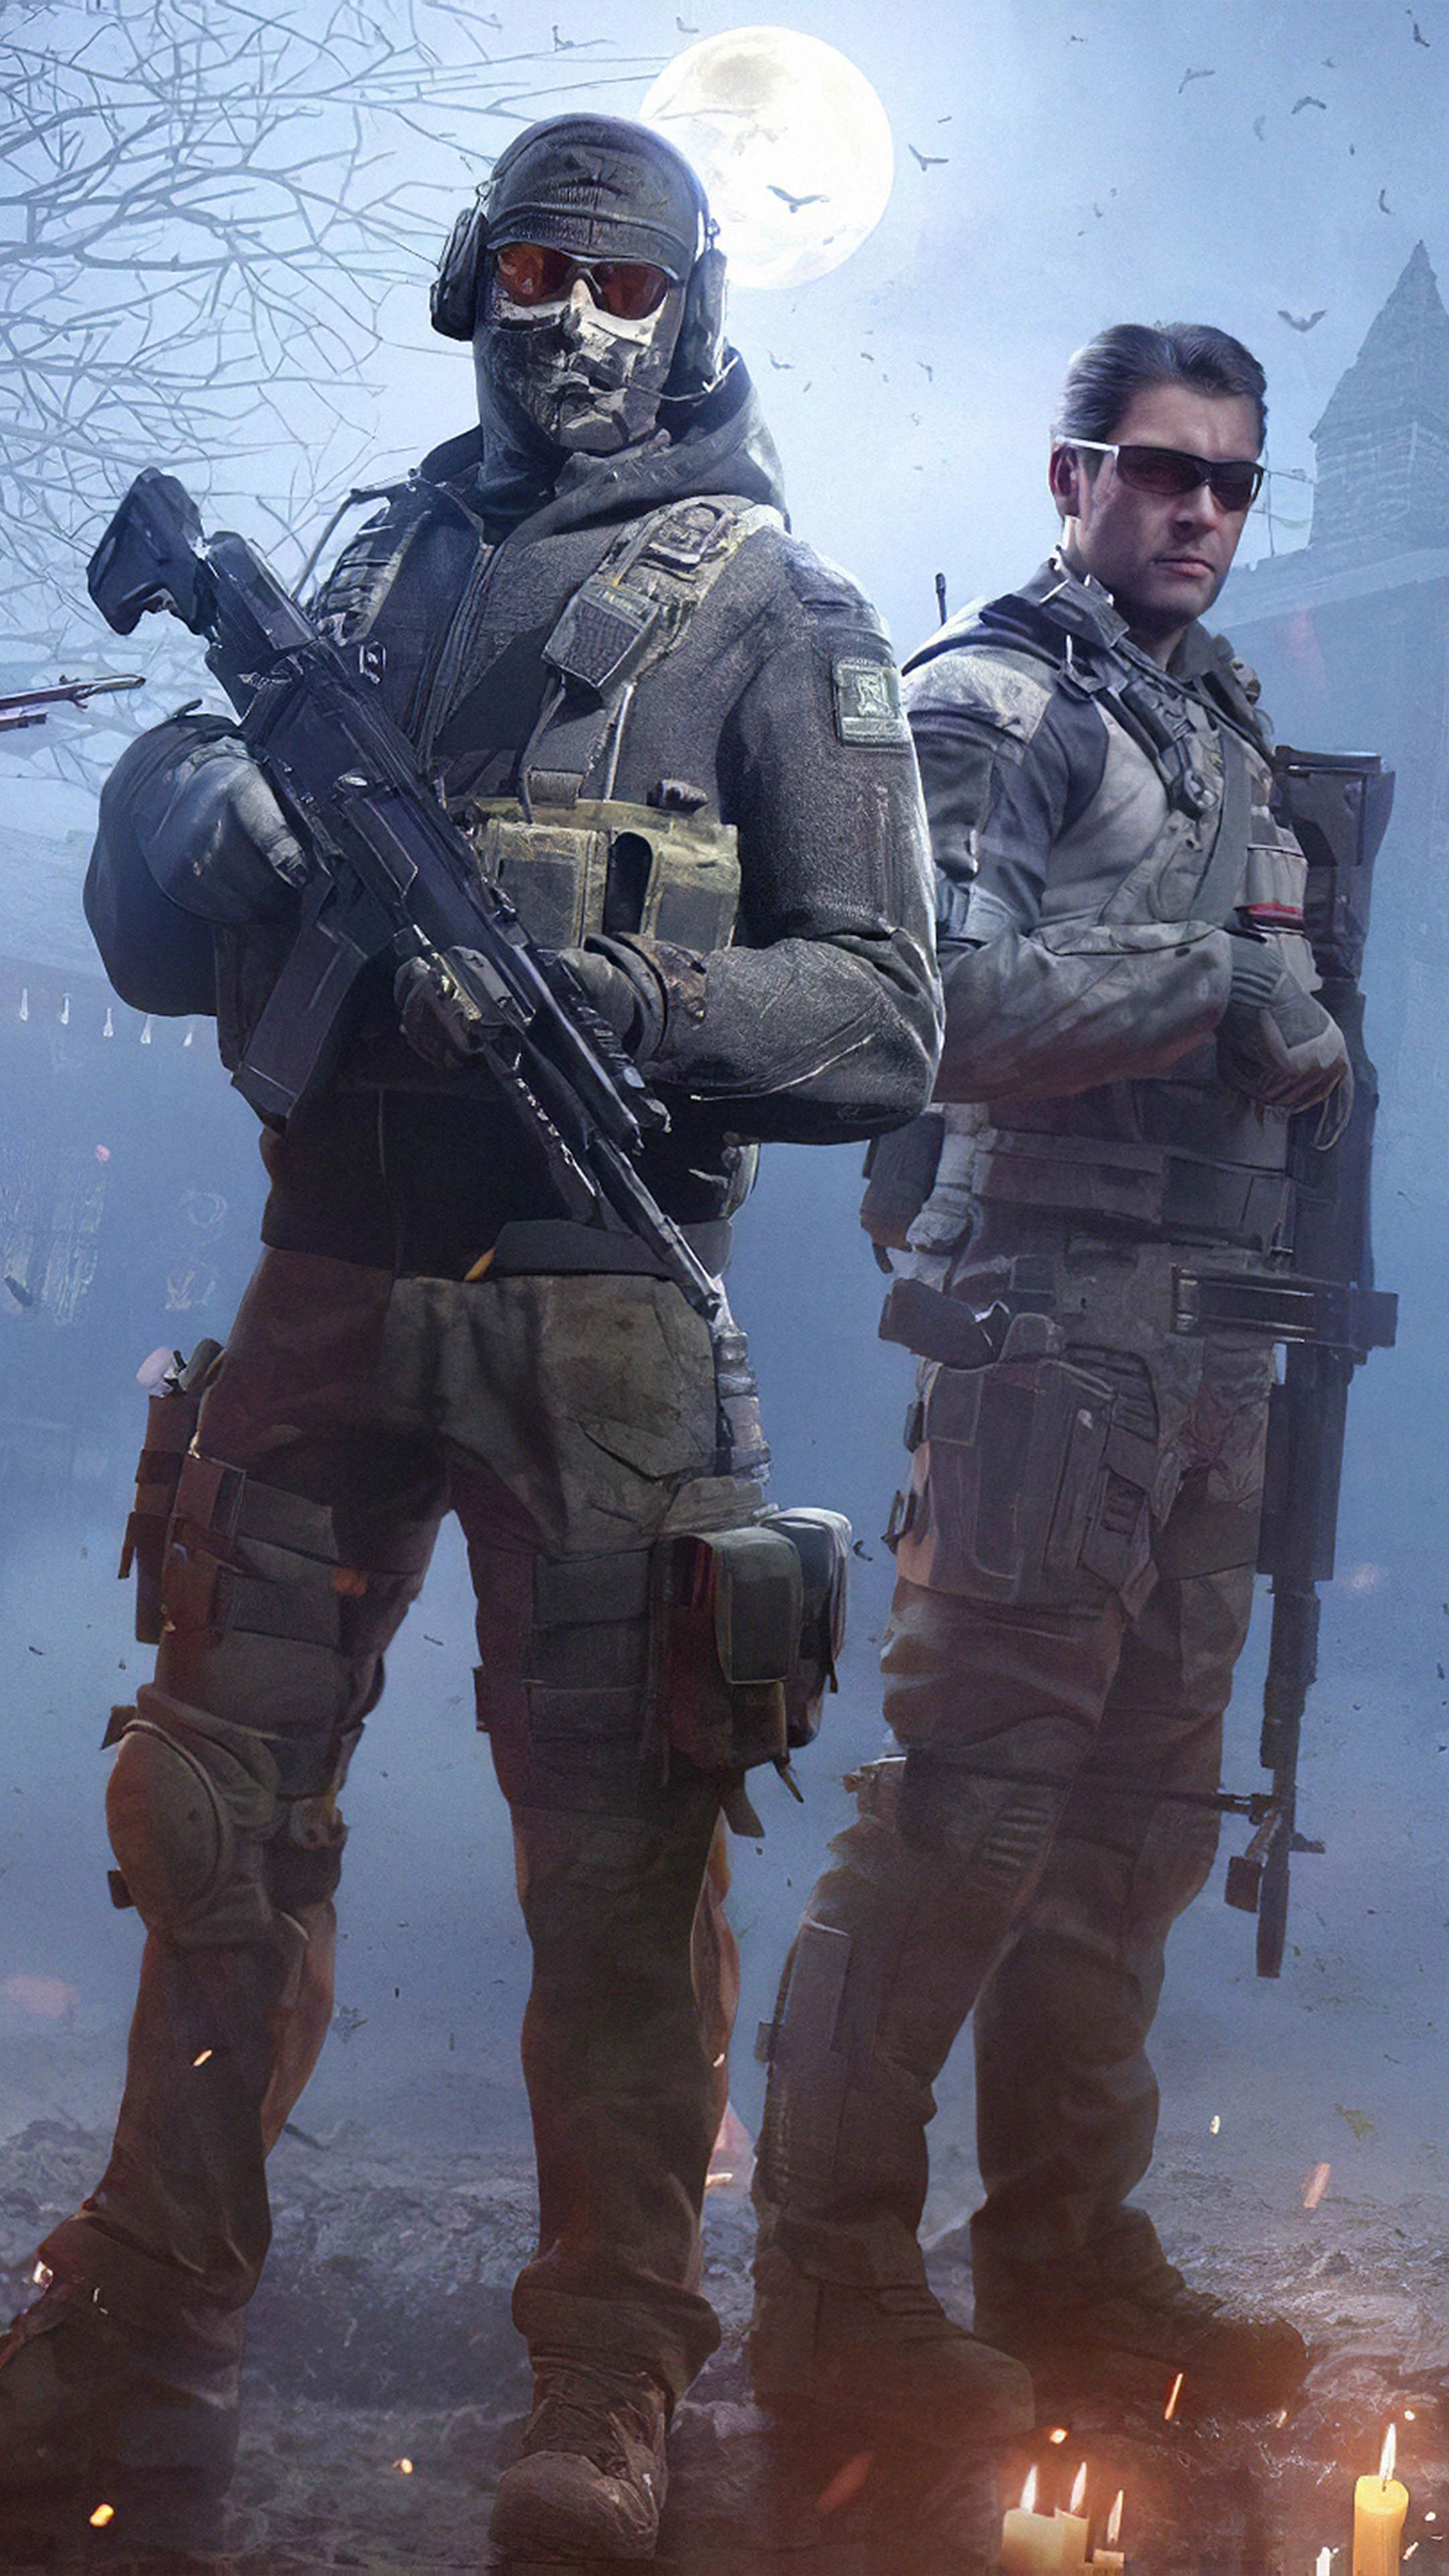 Squad Call Of Duty Mobile 4k Ultra Hd Mobile Wallpaper In 2020 Call Of Duty Call Of Duty Black Call Of Duty Ghosts